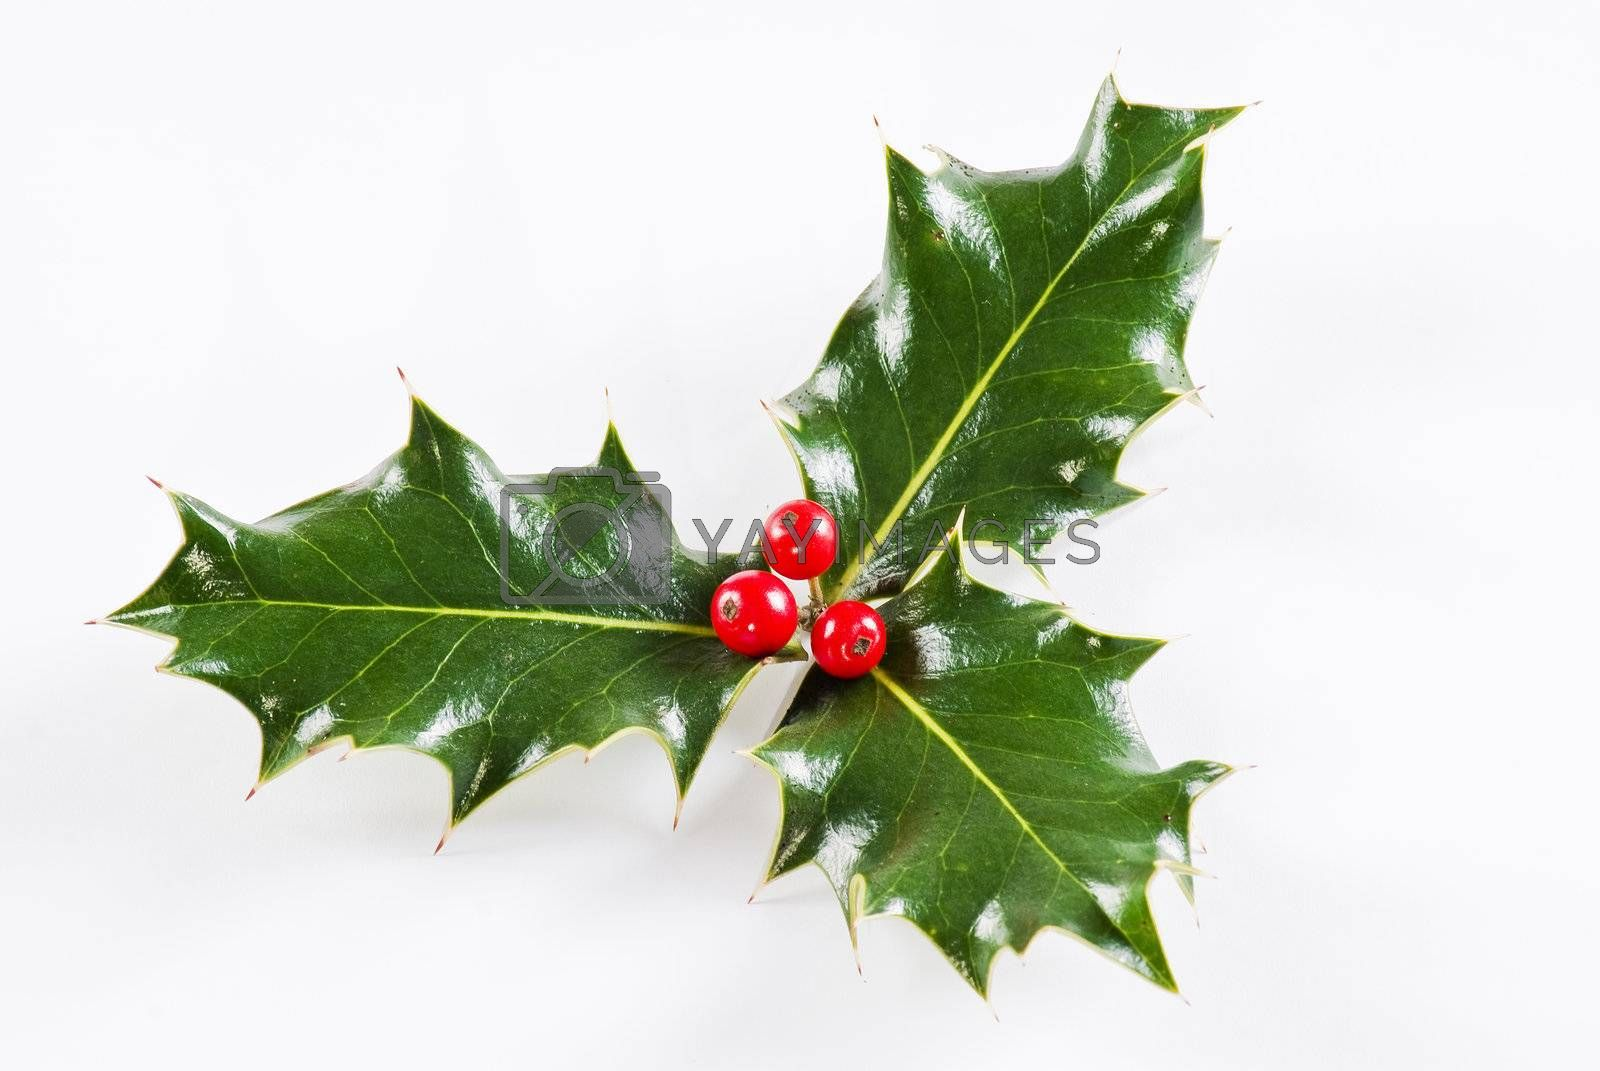 Holly leaf with red berries by caldix